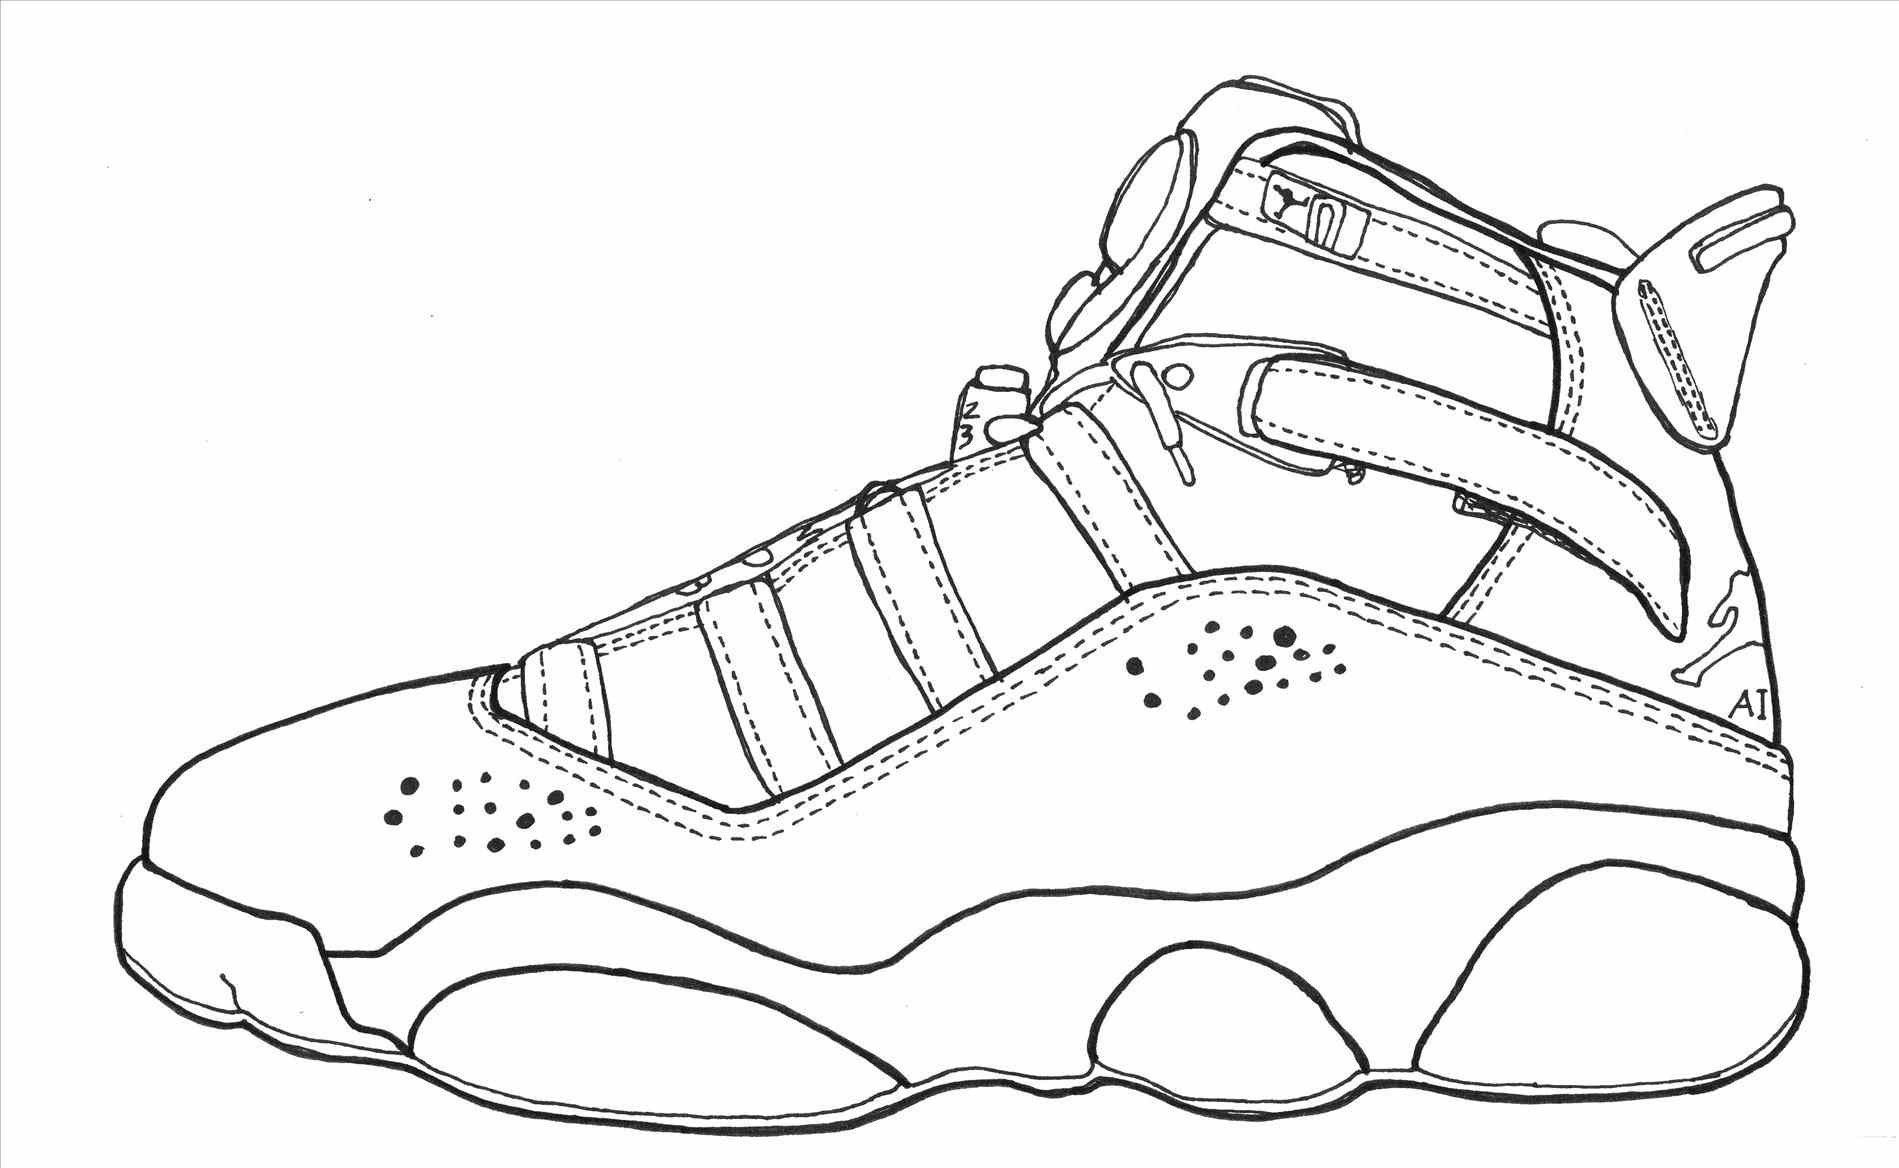 Shoe Coloring Page Largest Shoe Coloring Page Pages In Kevin Durant Shoes Coloring Pages Davemelillo Com Jordan Coloring Book Pictures Of Shoes Shoes Drawing